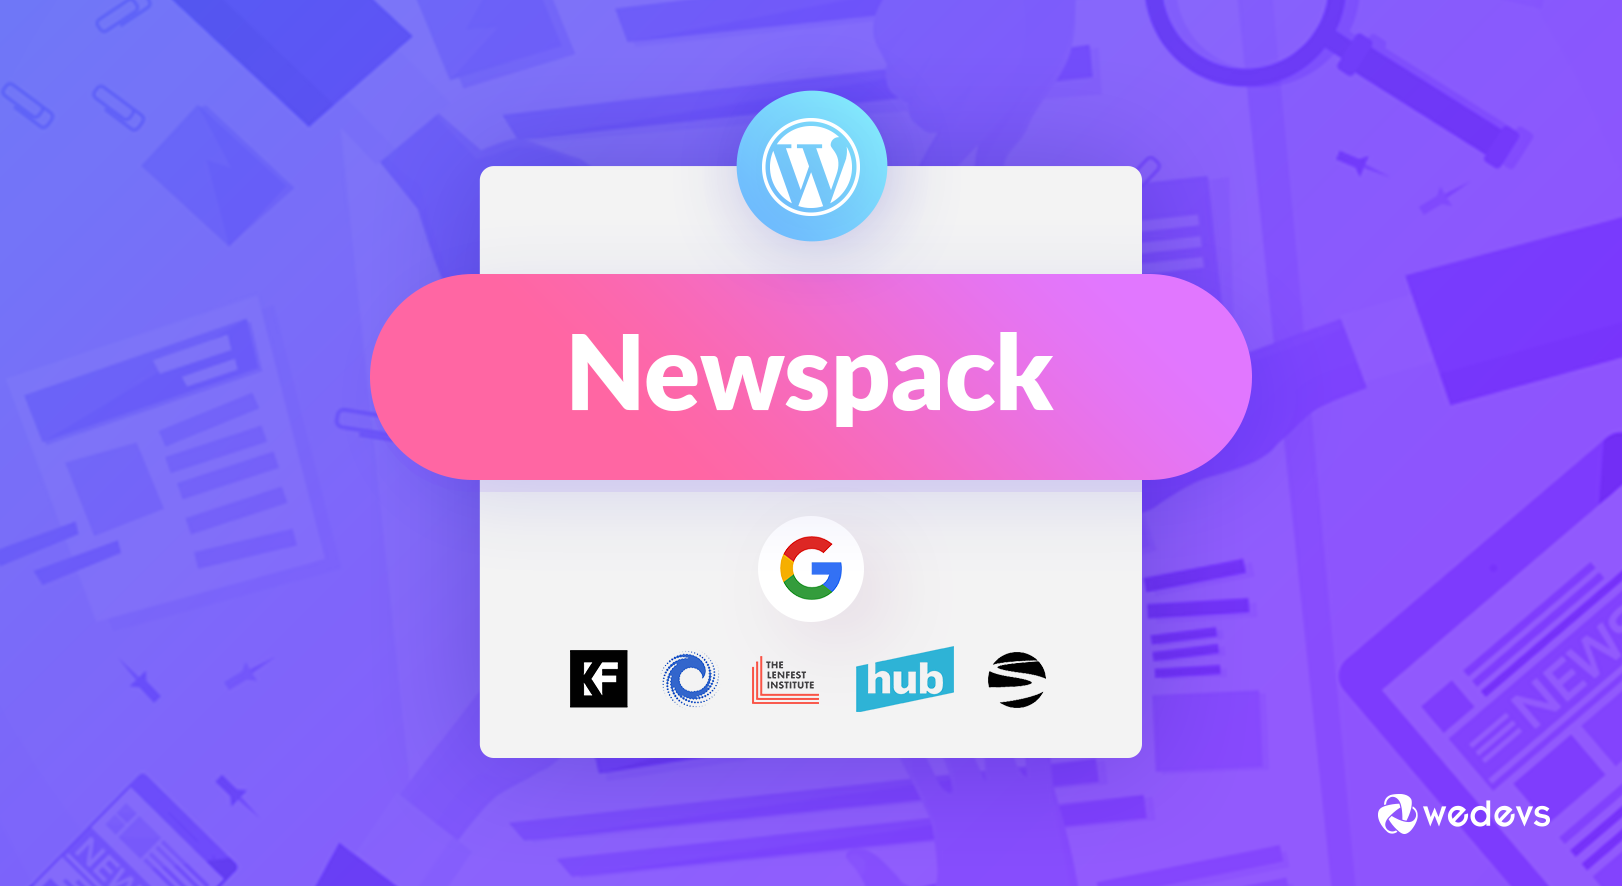 WordPress Partnering with Google to Develop a News Publishing Hub 'Newspack'